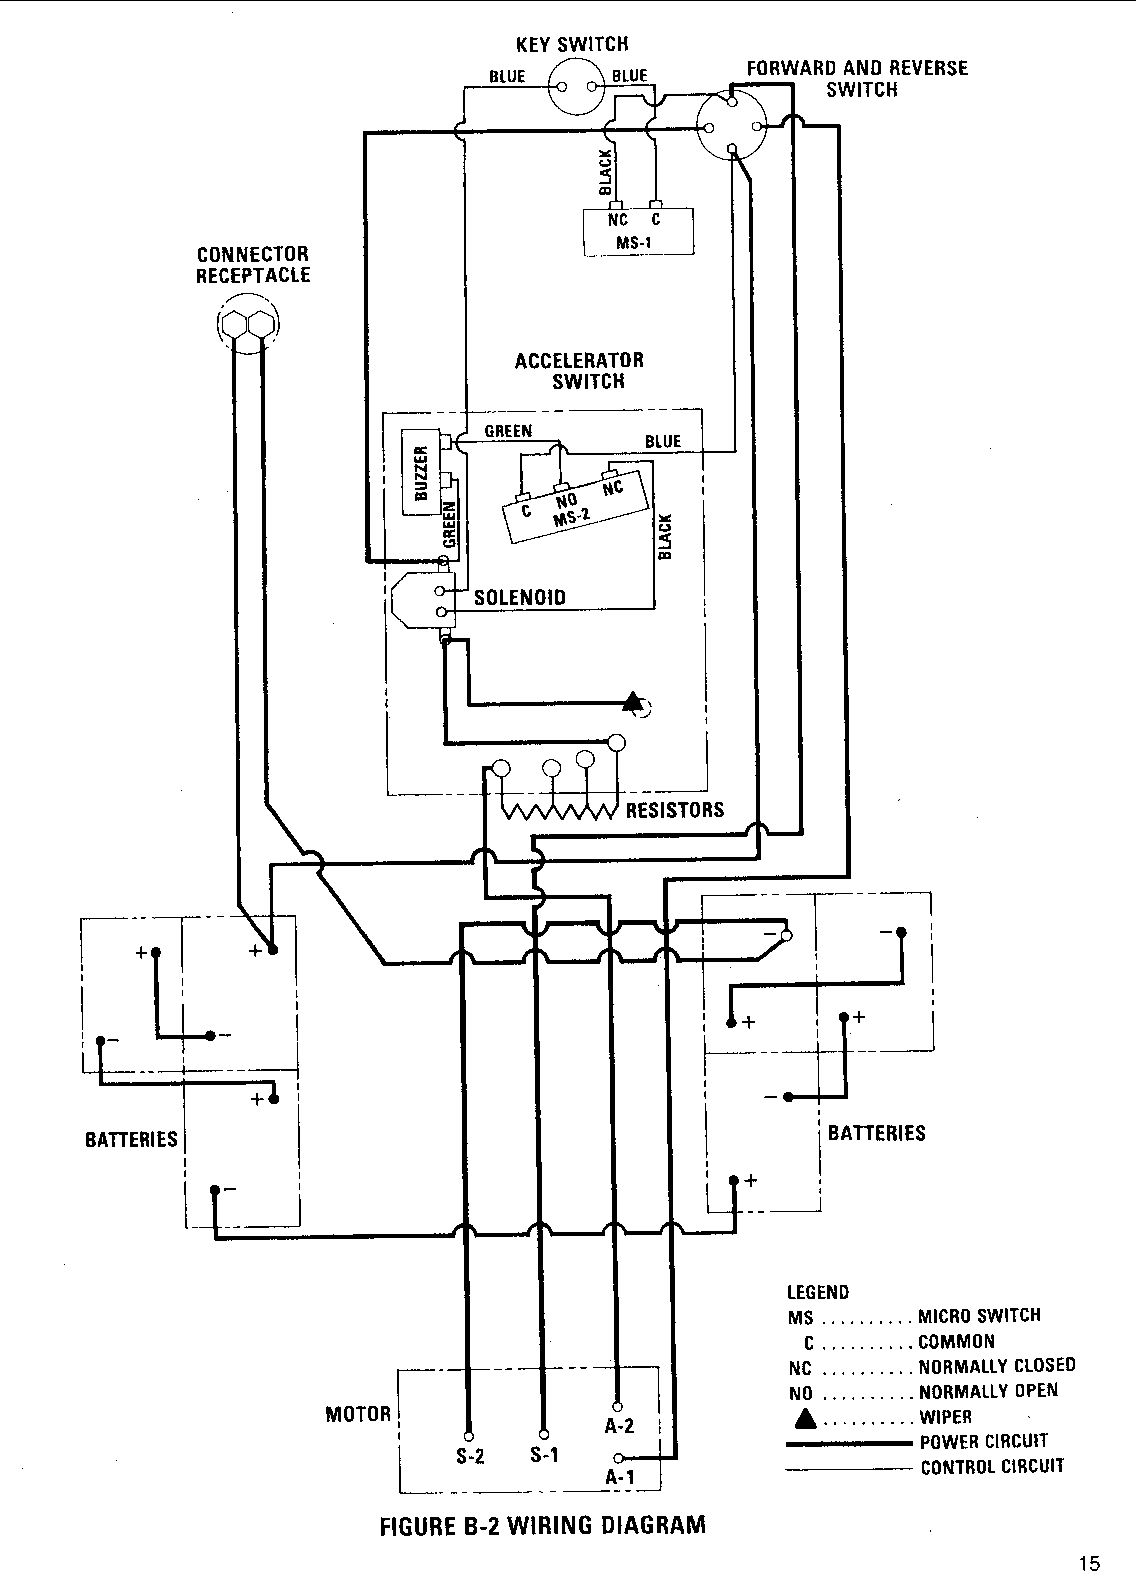 Advance Ballast Kit Wiring Diagram